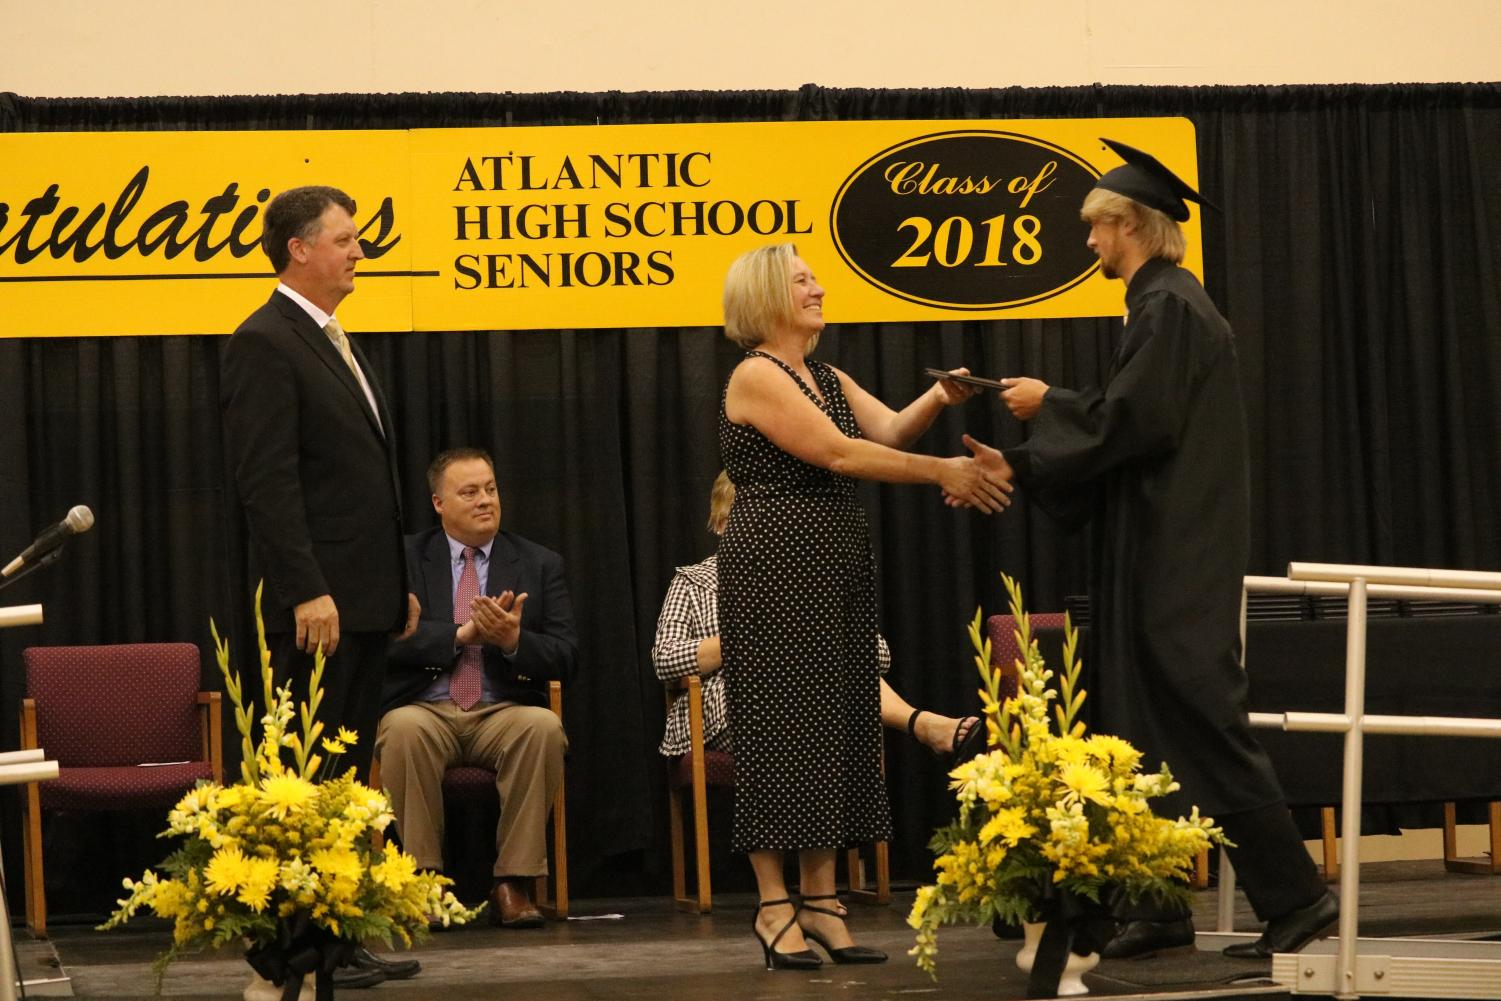 CONGRATULATIONS - 2018 graduate Brady Dickerson shakes hands with Board of Education member Allison Bruckner. Graduates received their diplomas at commencement last May.